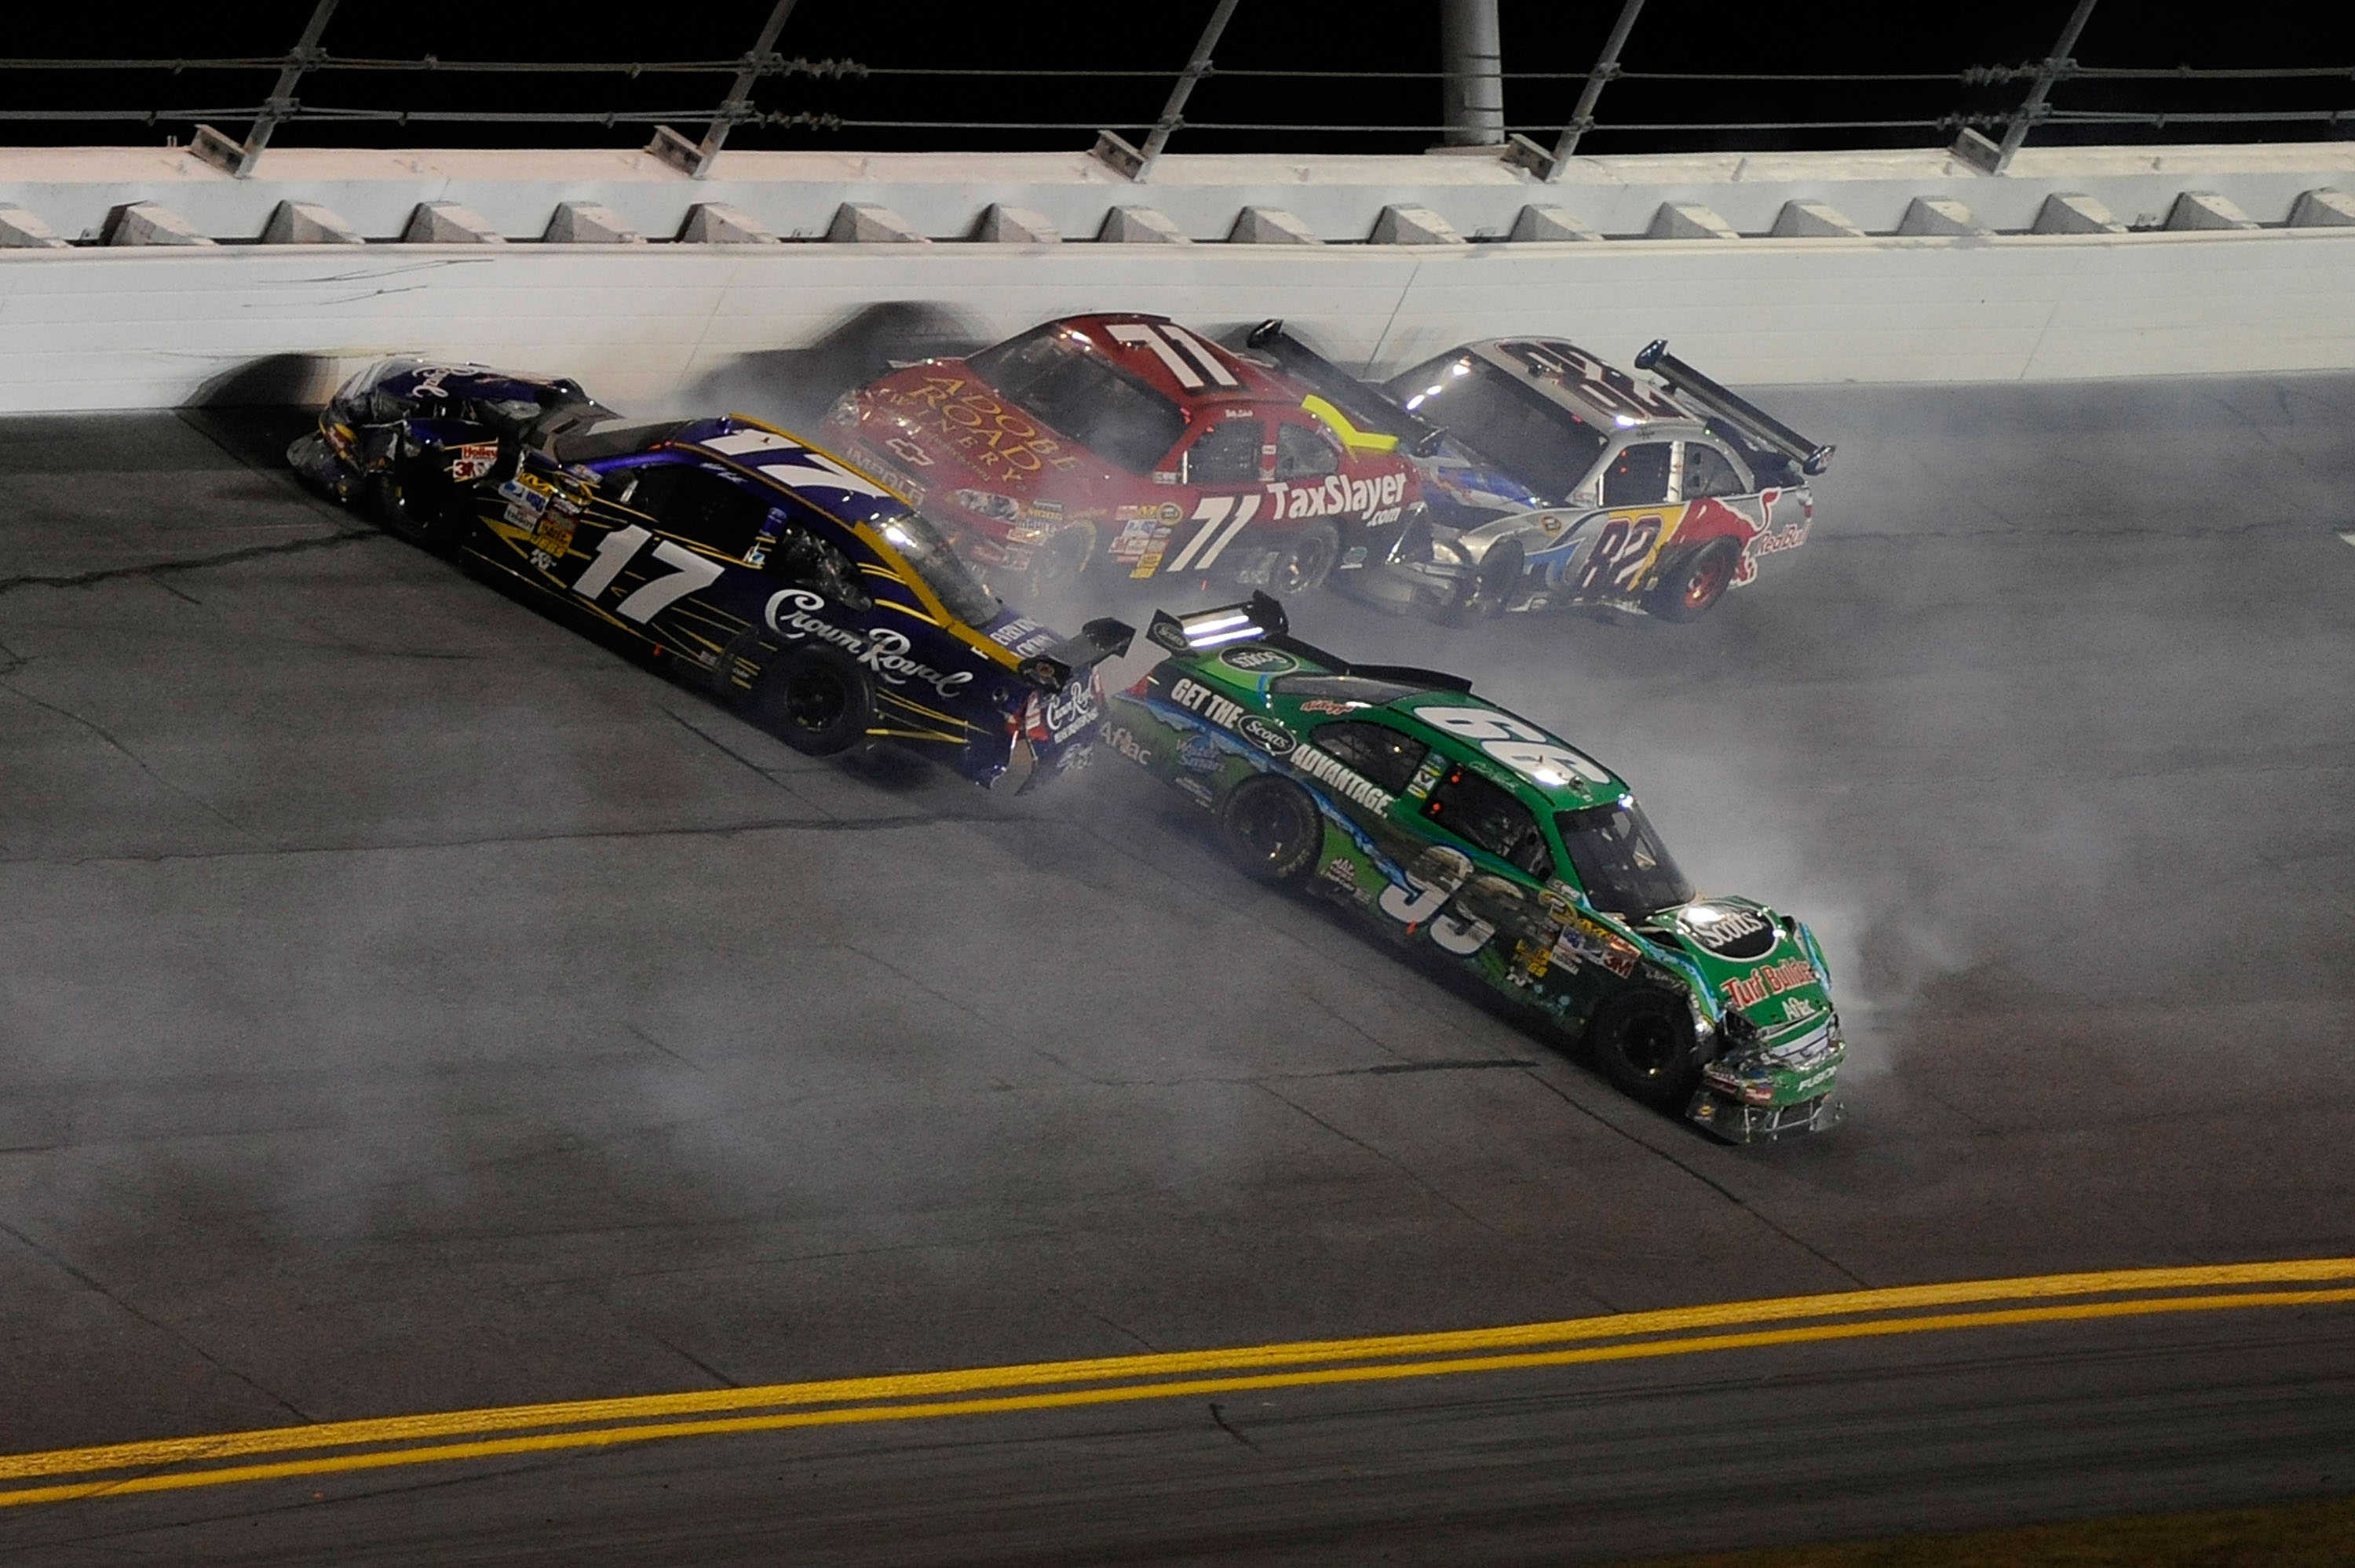 Carl Edwards 2010 Bud Shootout ended in a pile up with teammate Matt Kenseth.